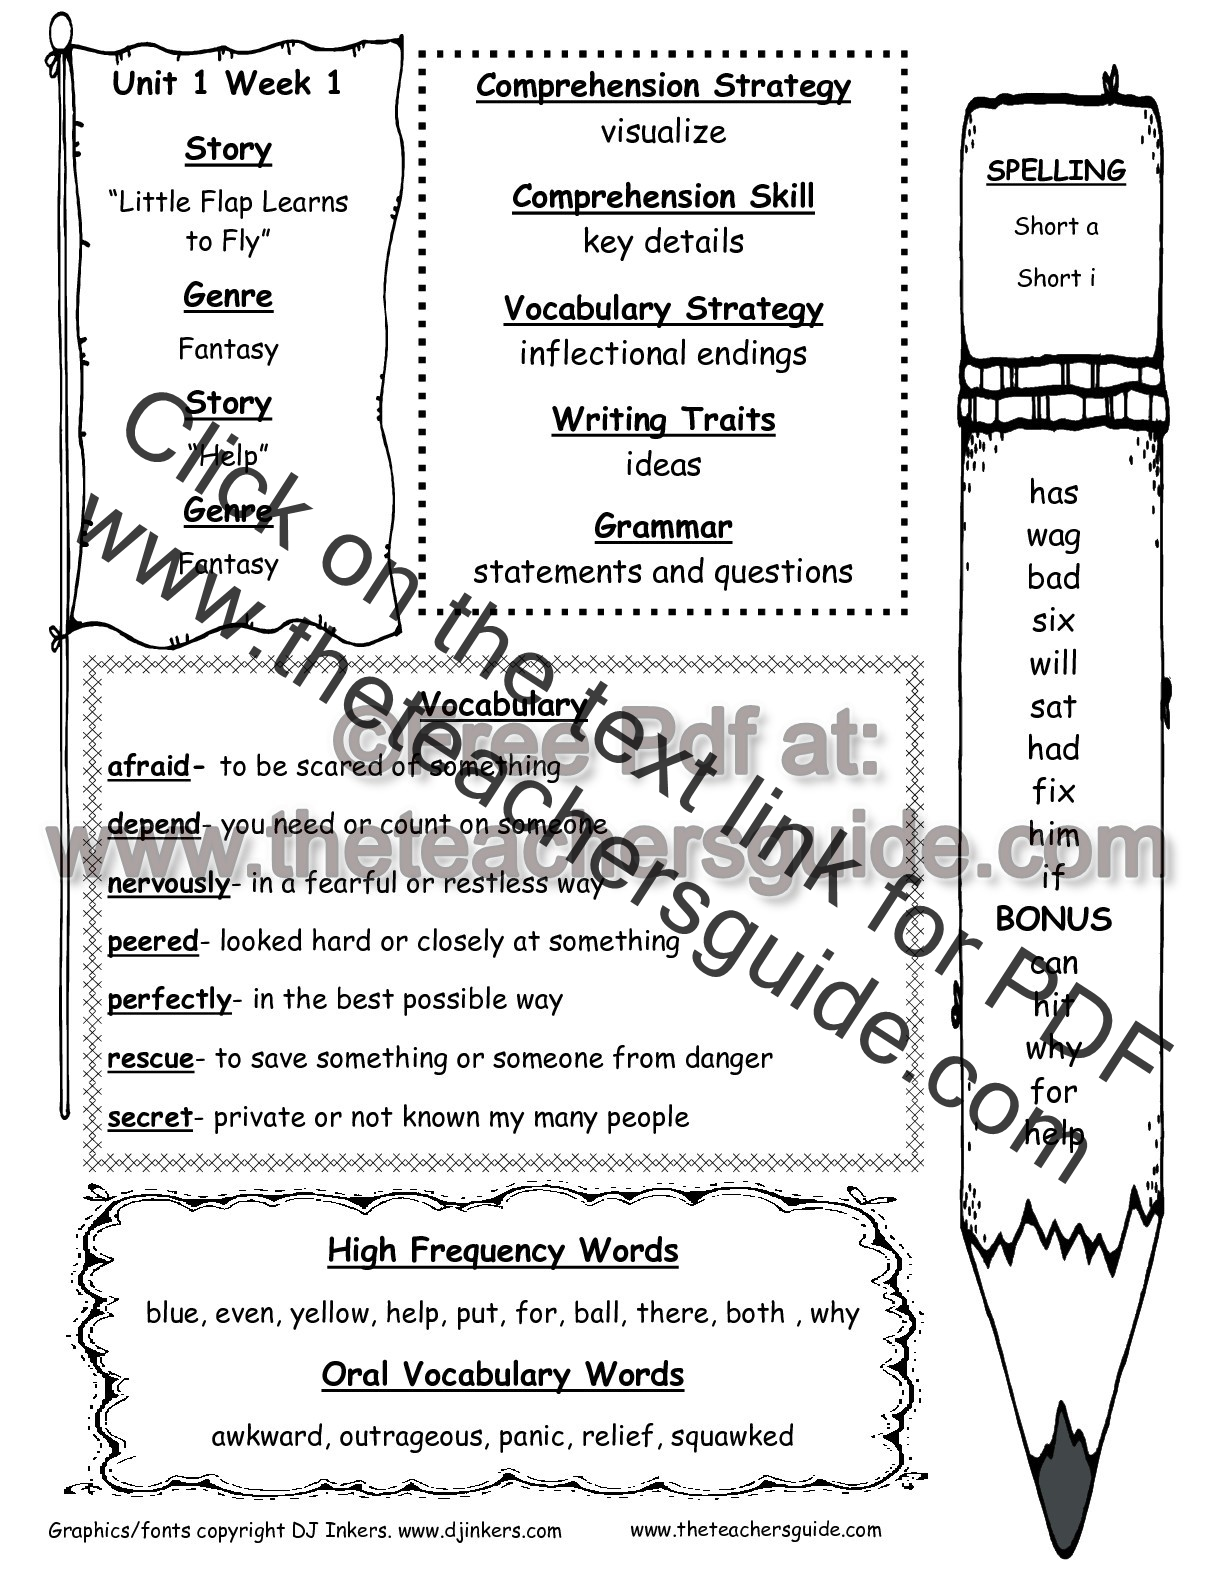 Worksheet Grammar Worksheets 4th Grade Grass Fedjp Worksheet Study Site